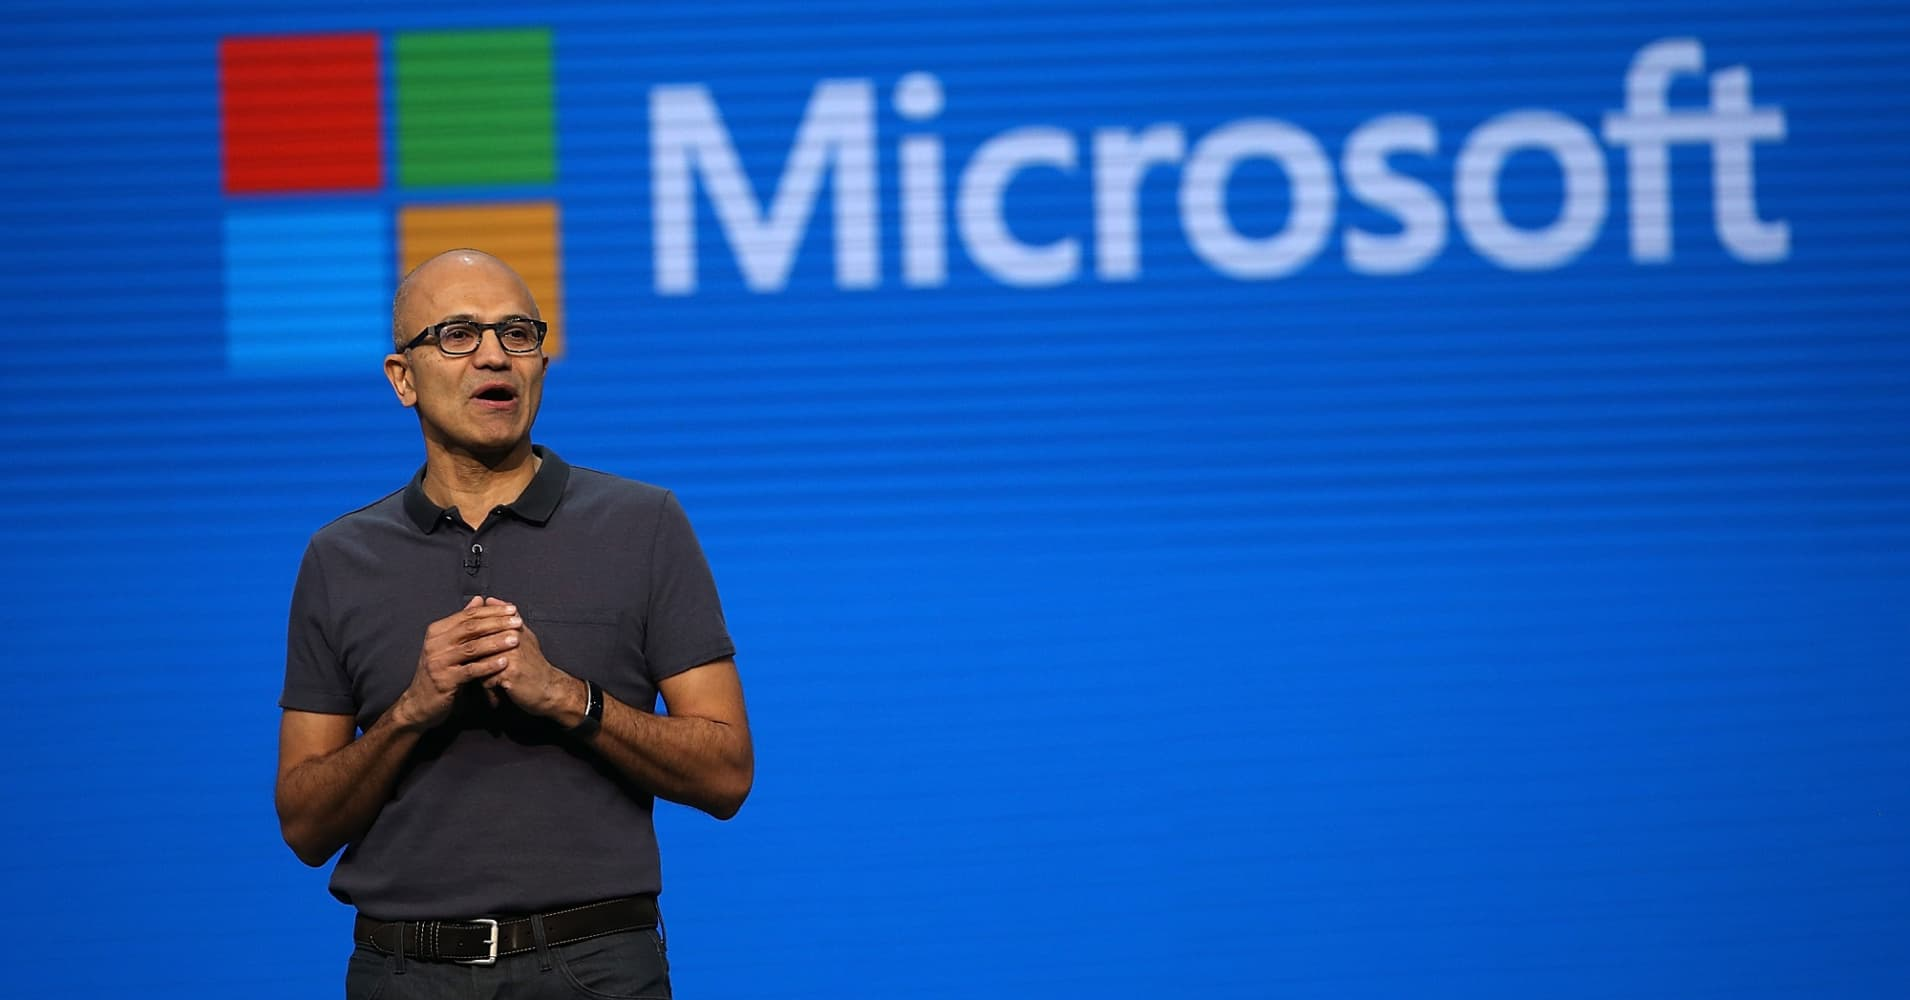 Microsoft is expected to unveil new Surface computers Tuesday night